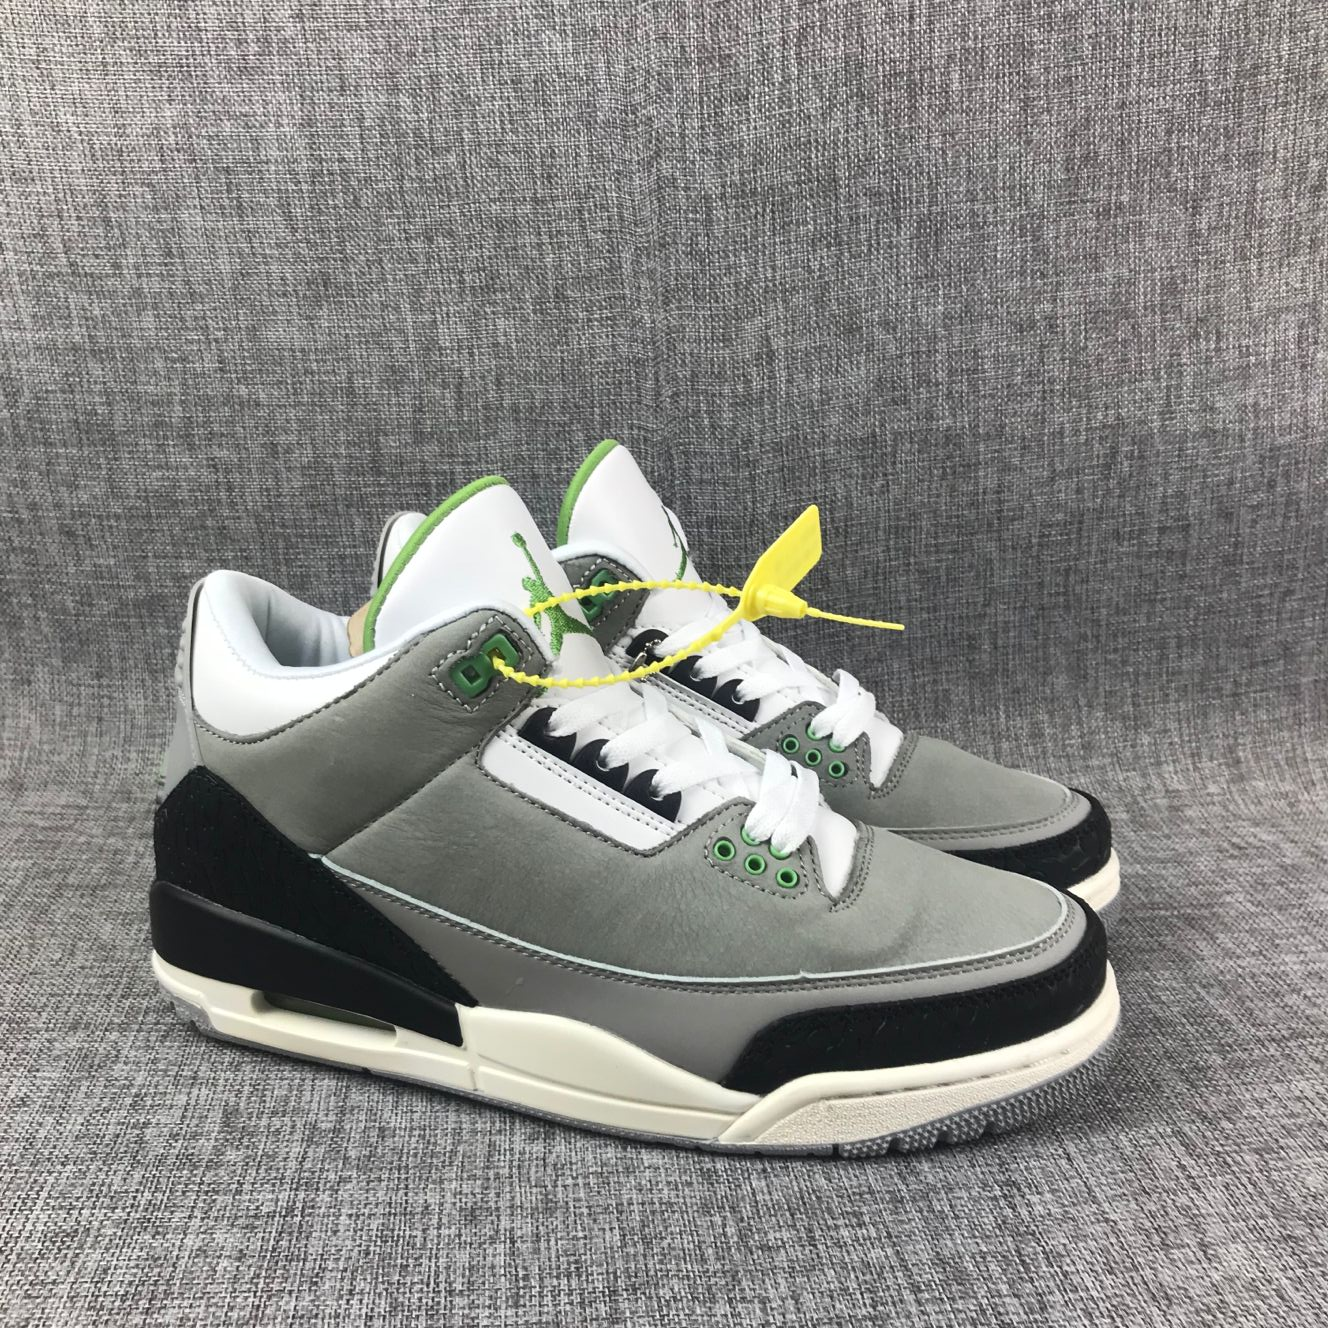 Men's Running weapon Super Quality Air Jordan 3 Shoes 004